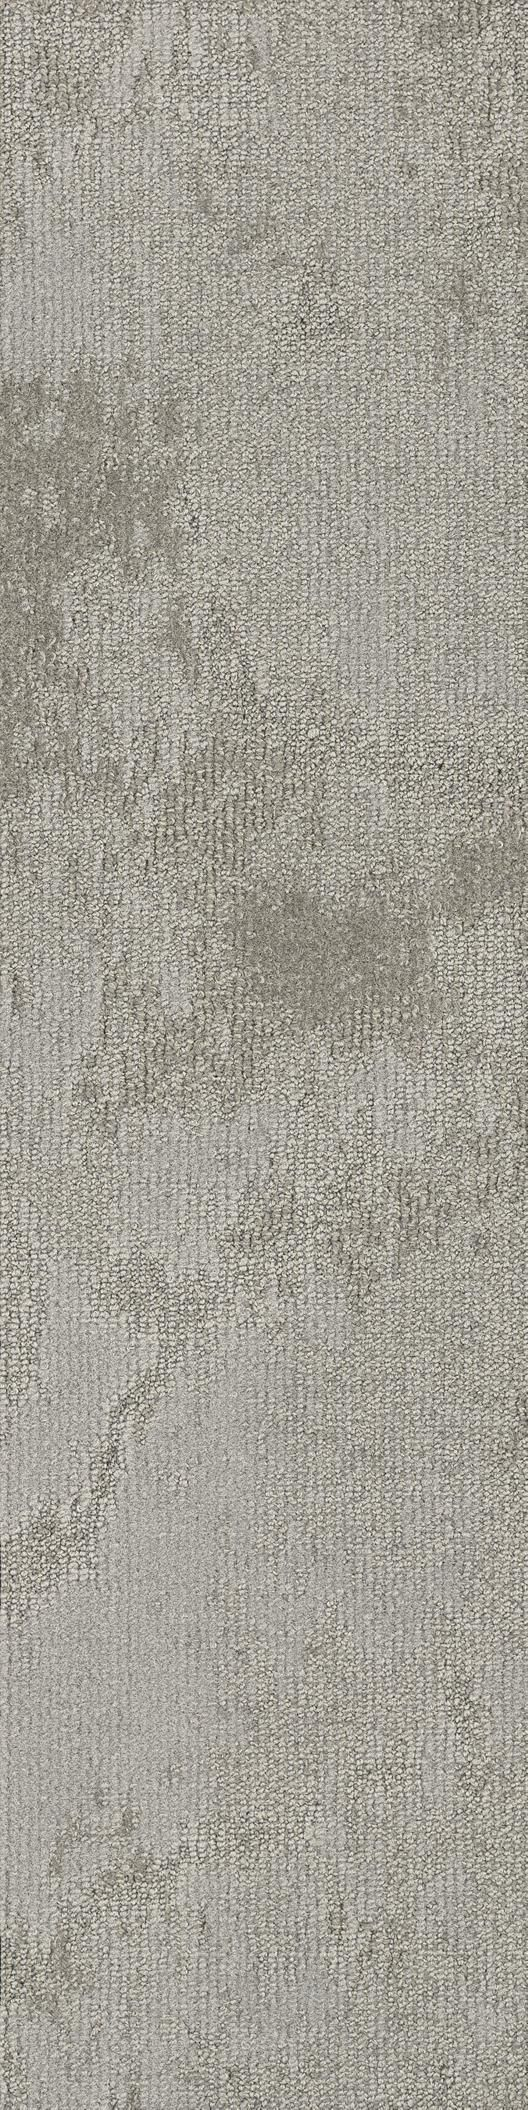 Best 25 commercial carpet tiles ideas only on pinterest shaw view the commercial carpet style explore tile from shaw contract view the carpet in a room scene order samples see specifications and more baanklon Images